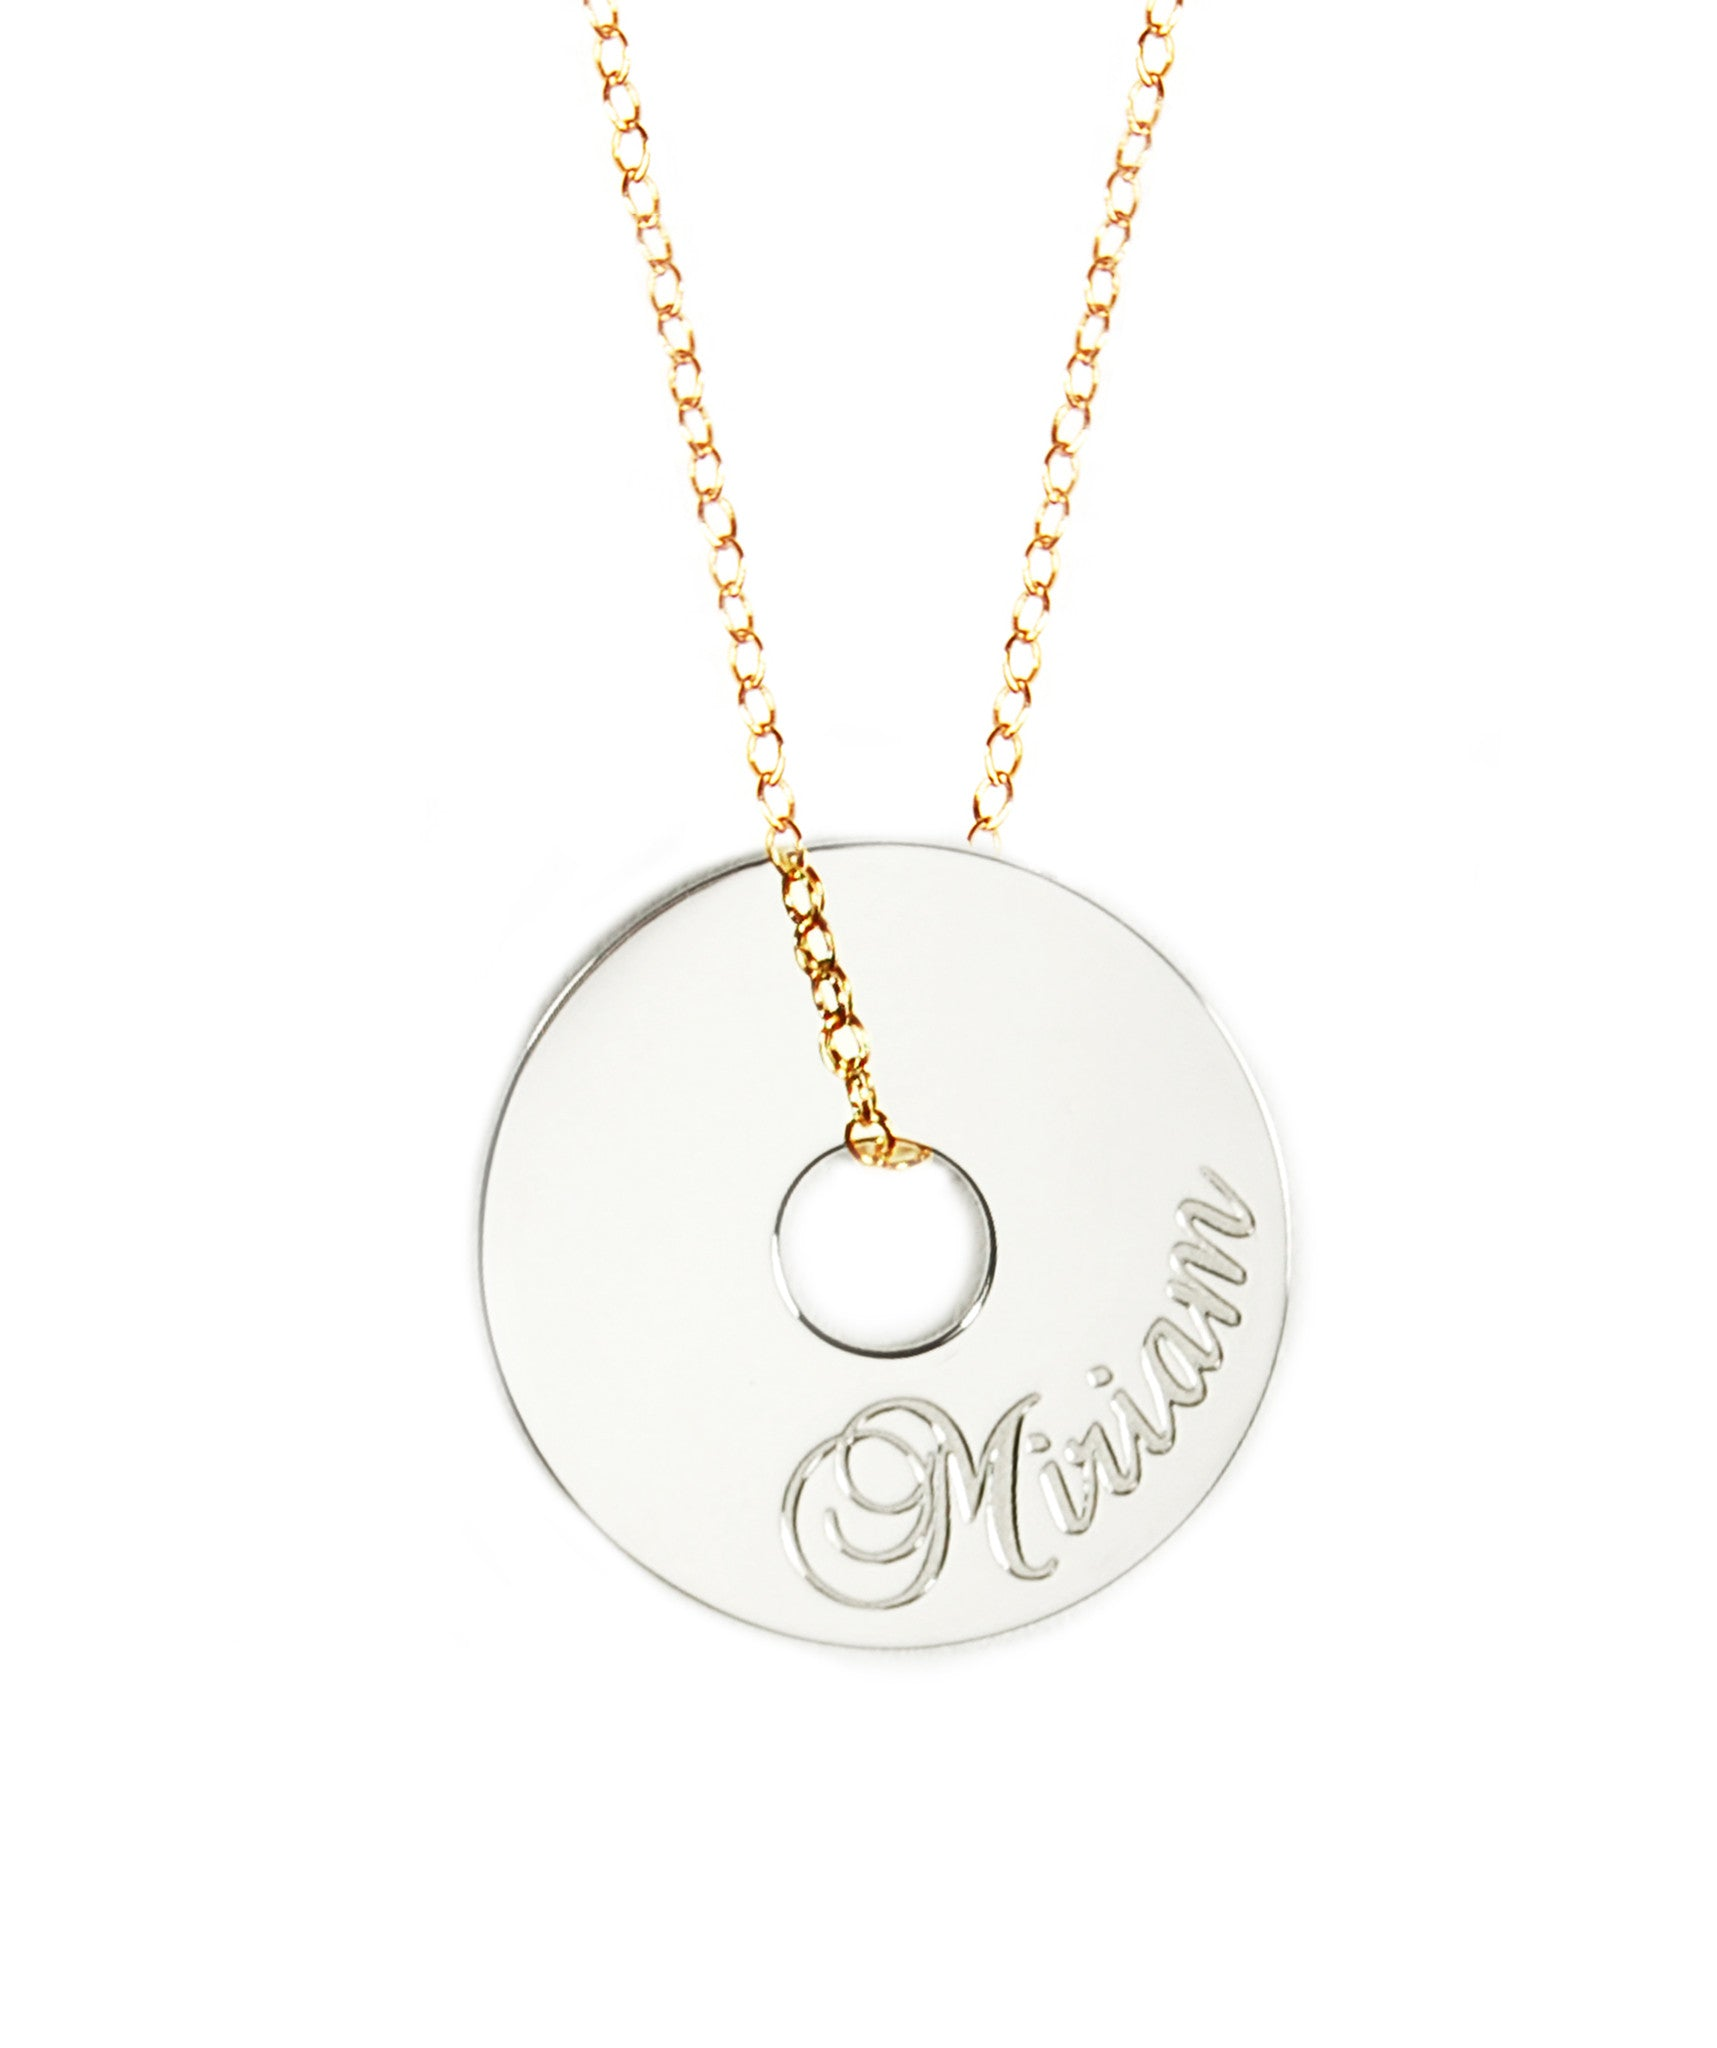 Personalized Token Necklace